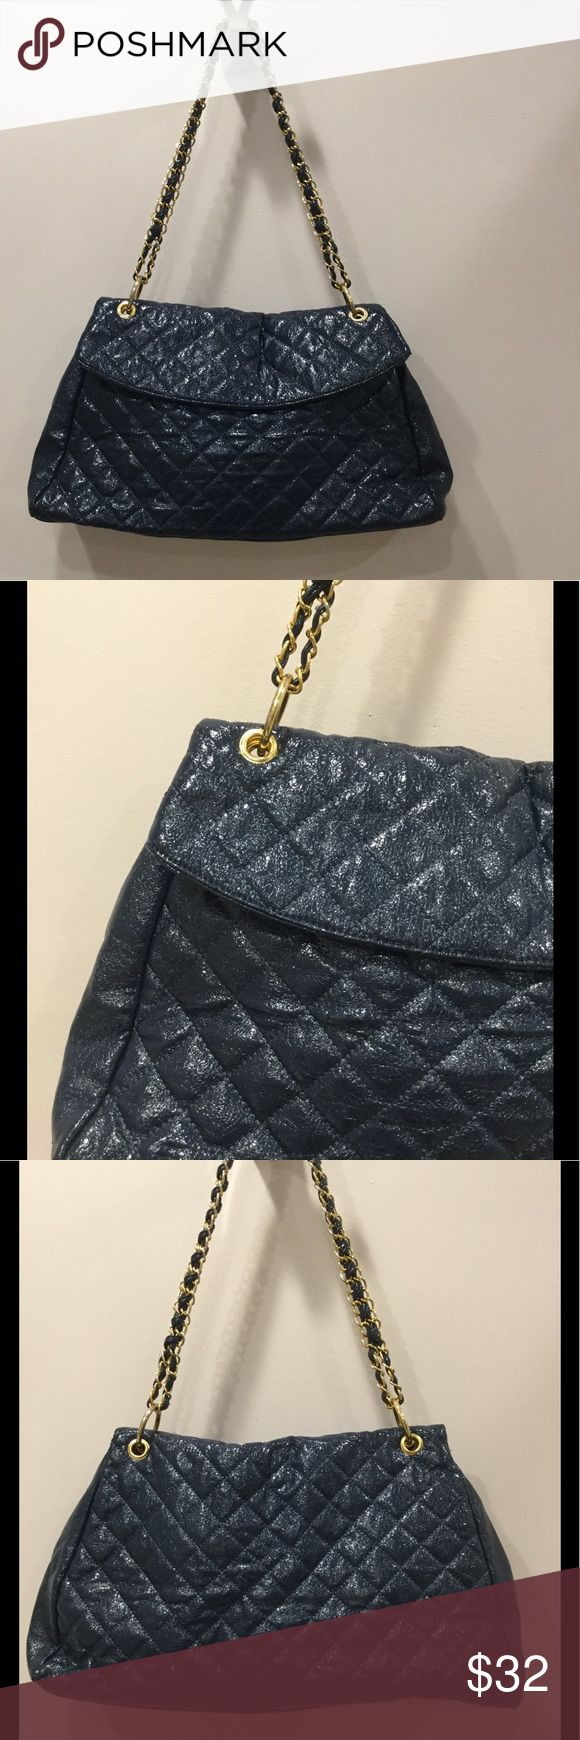 """Blue Patent Quilted Shoulder Bag Blue Patent Quilted Shoulder Bag. There are no tags or labels in this bag.  I am assuming that it is faux leather.  The bag has a beautiful """"crunchy sheen"""". Not too shiny.  There is gold hardware on the 9"""" drop strap.  It has a flap closure with magnets.  Great all around everyday bag.  The interior has 3 small pockets for cell phone, keys or lipstick. Bags Shoulder Bags"""